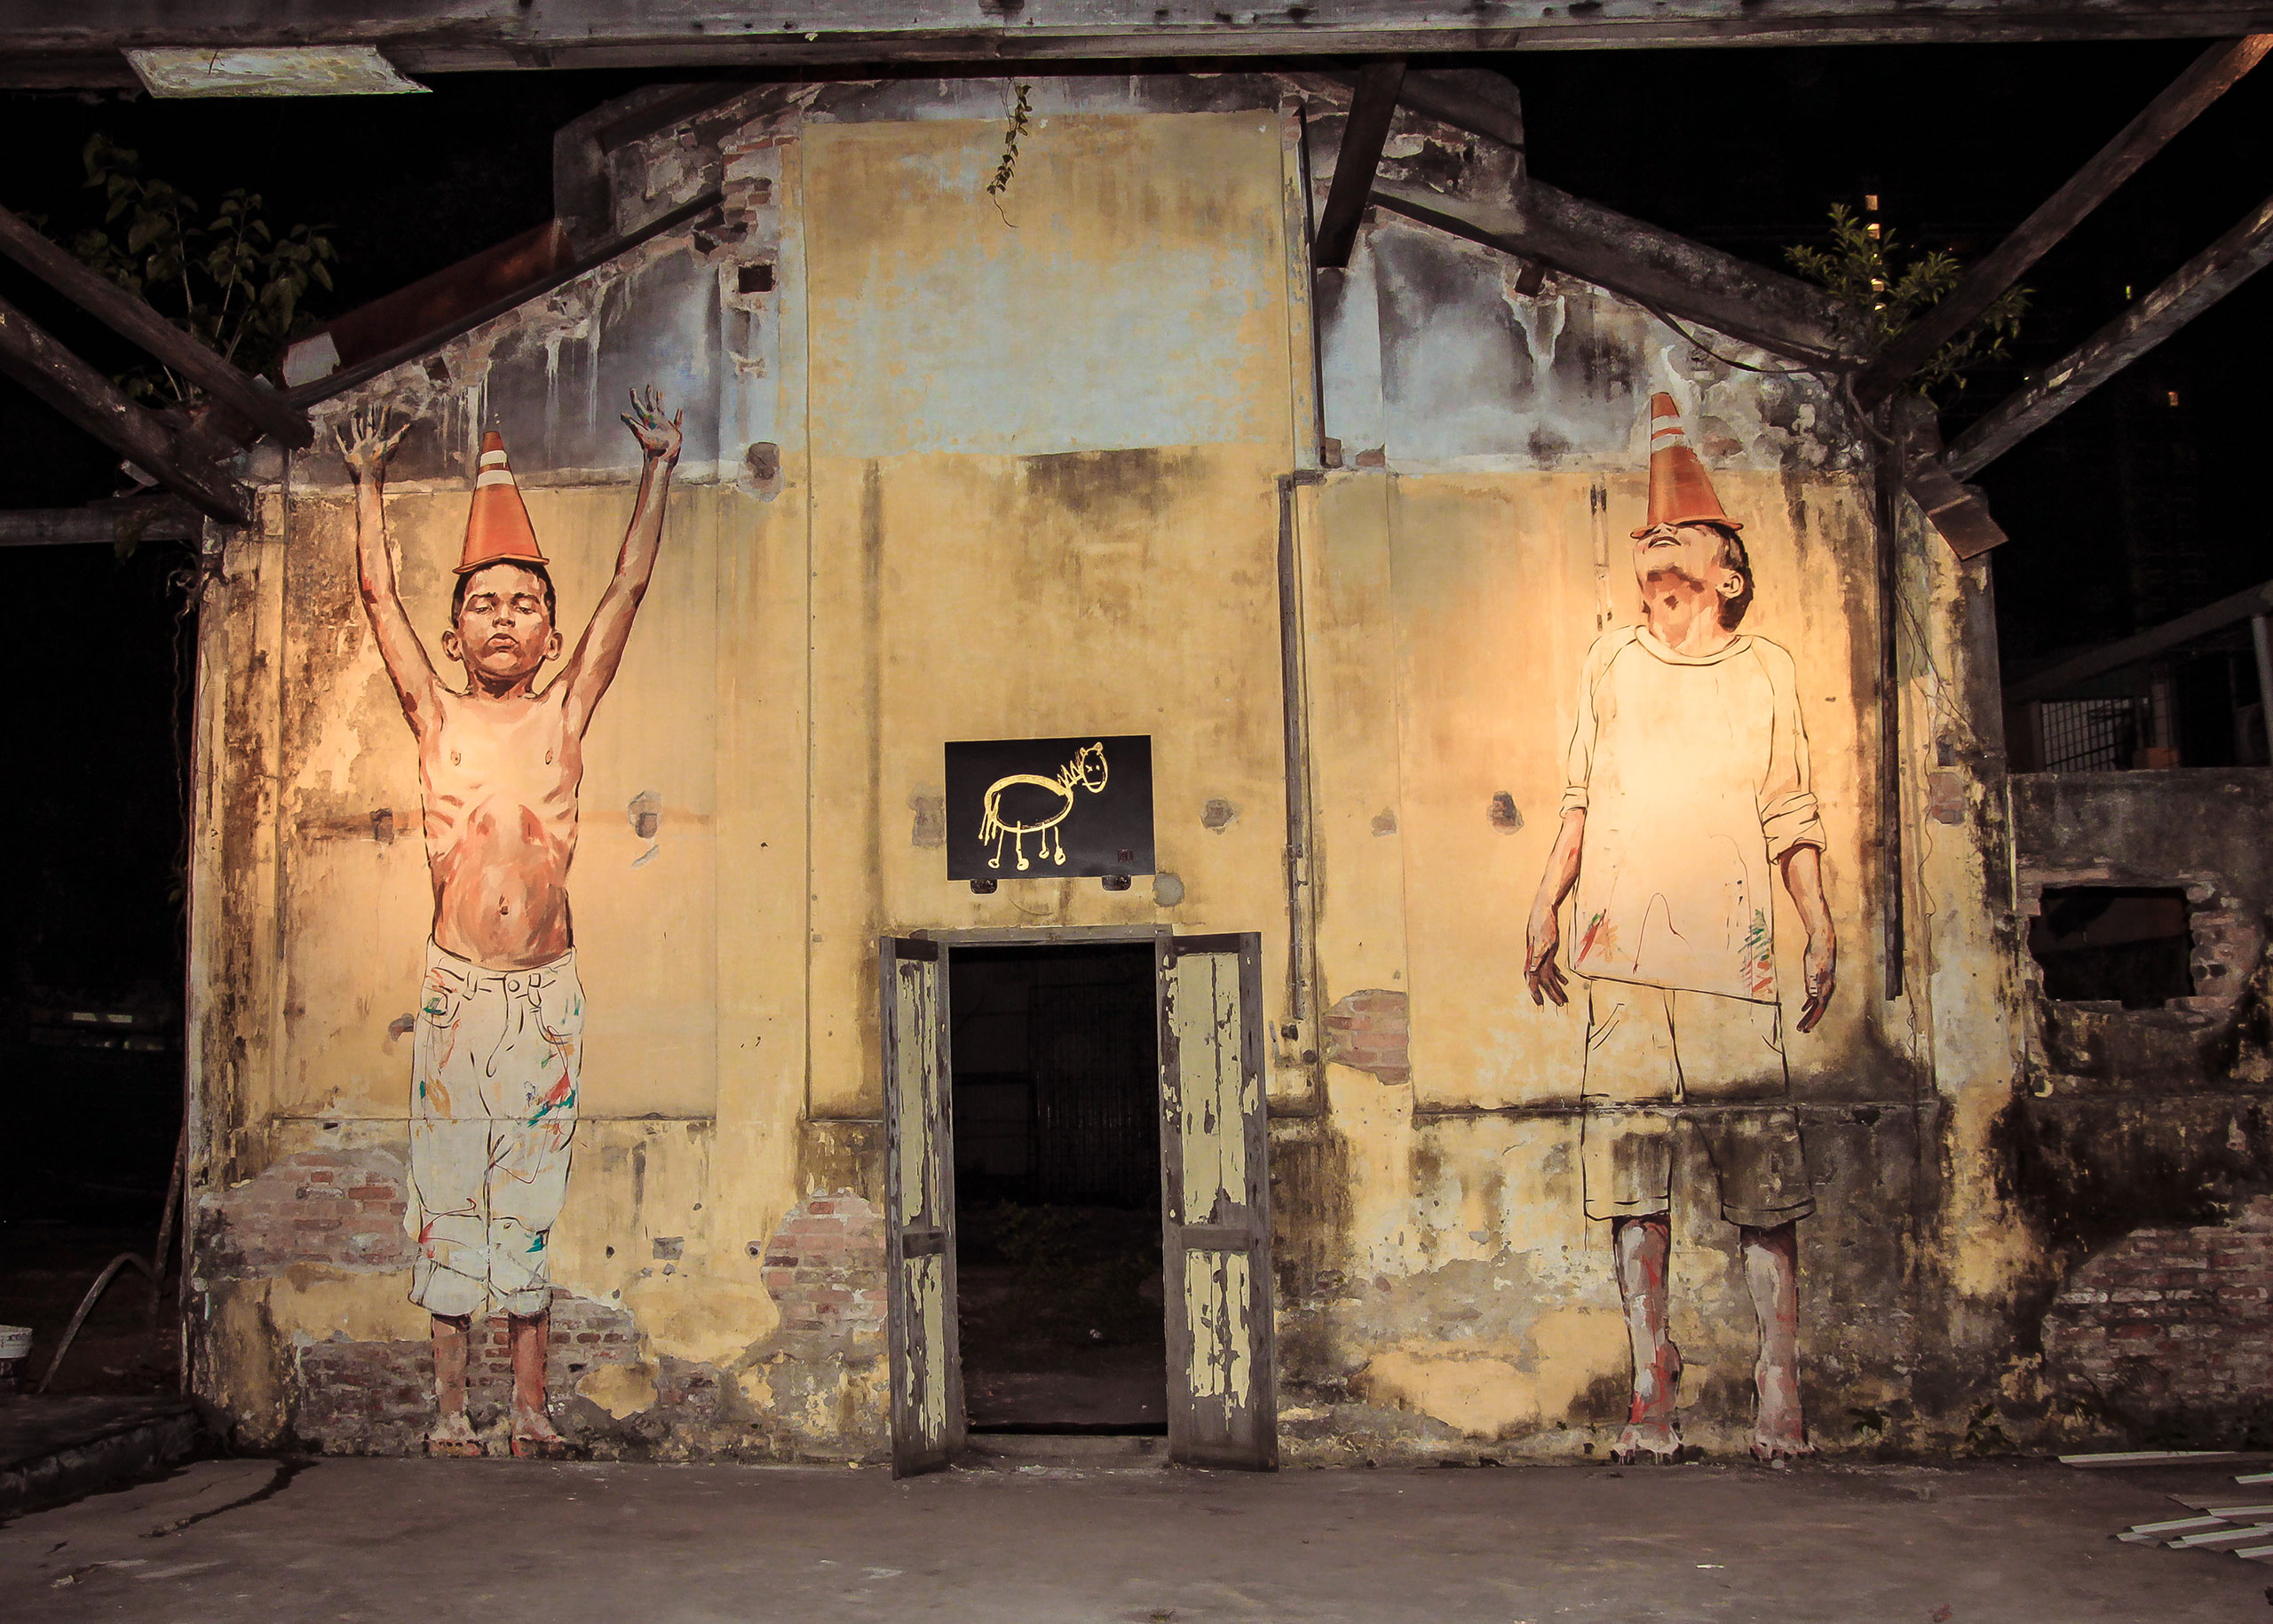 Hin Bus Depot, Penang. Photo courtesy of Ernest Zacharevic.